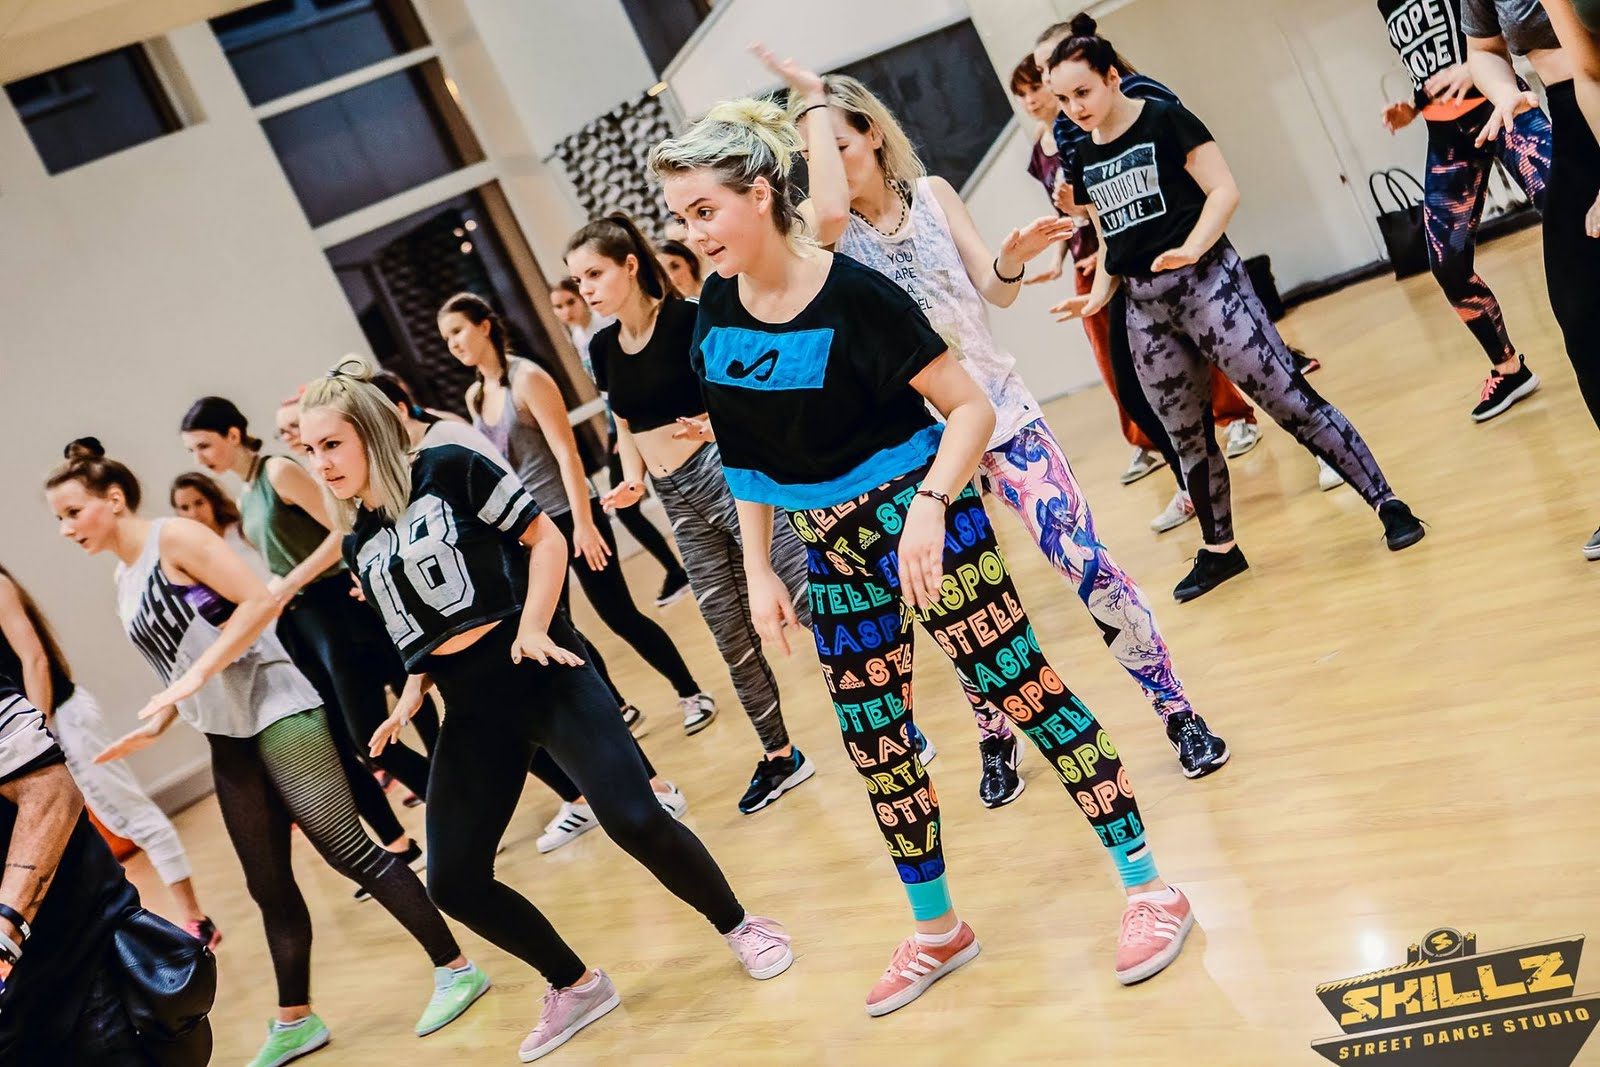 Dancehall workshop with Jiggy (France) - 29.jpg